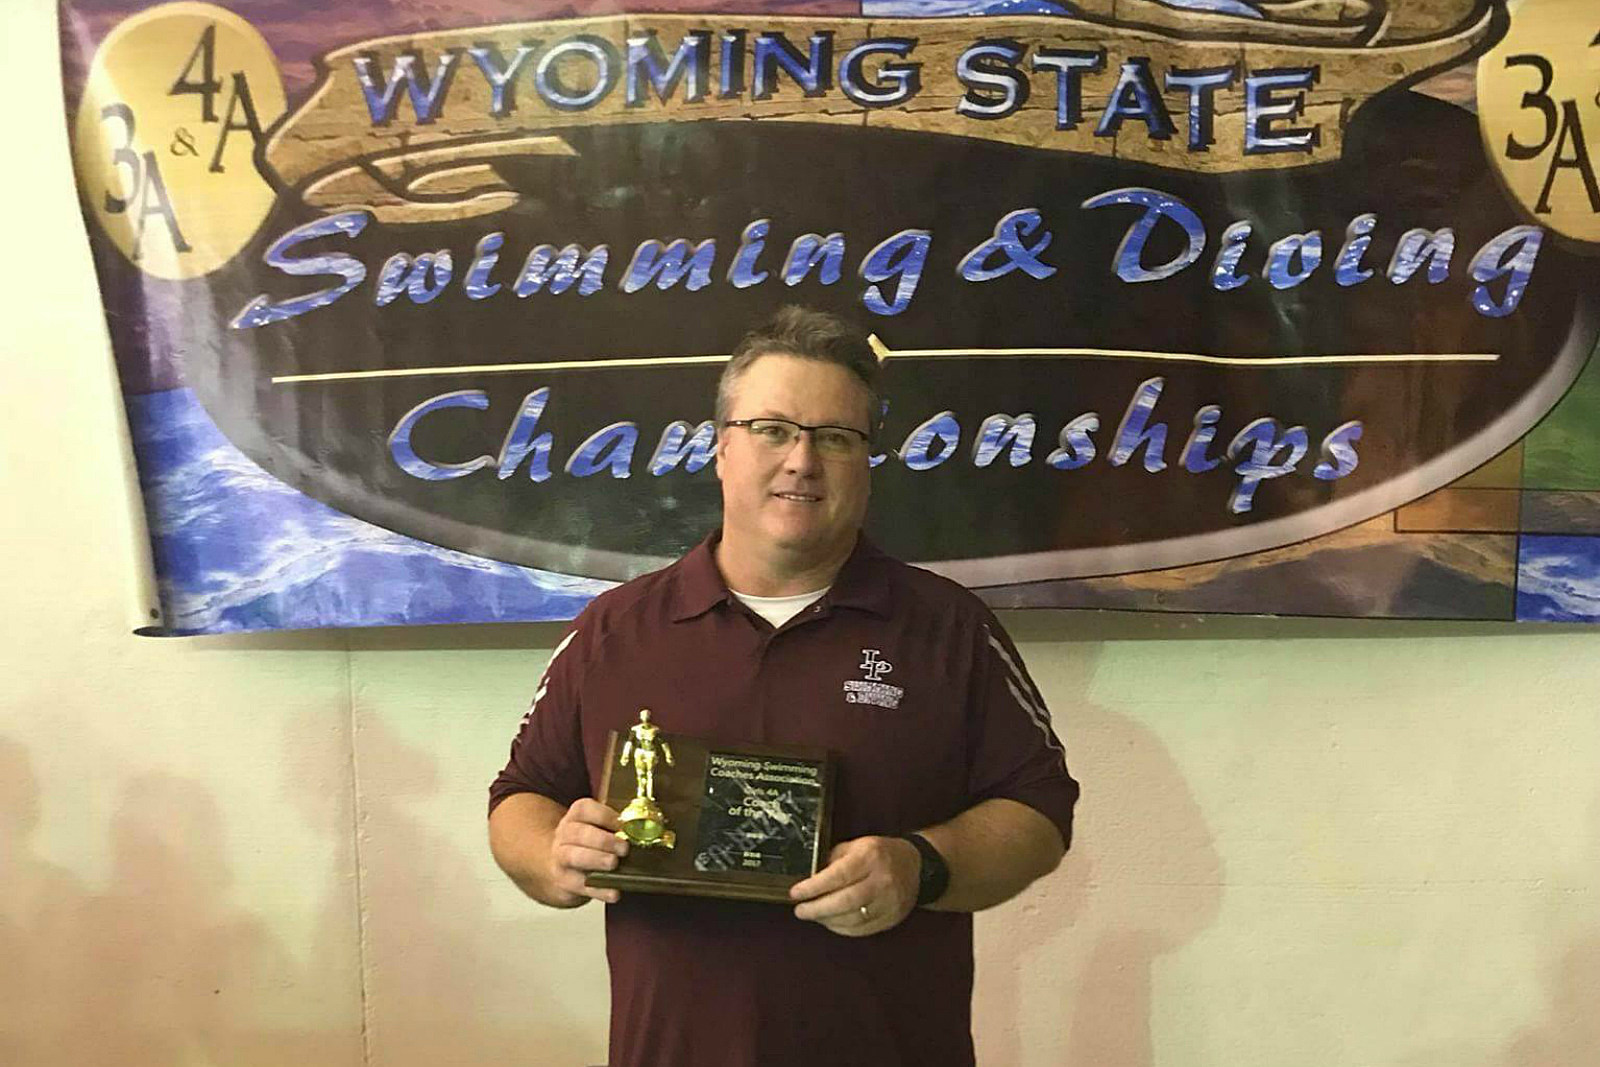 Tom Hudson, Laramie High School, LHS, Laramie Lady Plainsmen, Coach of the Year, 2017